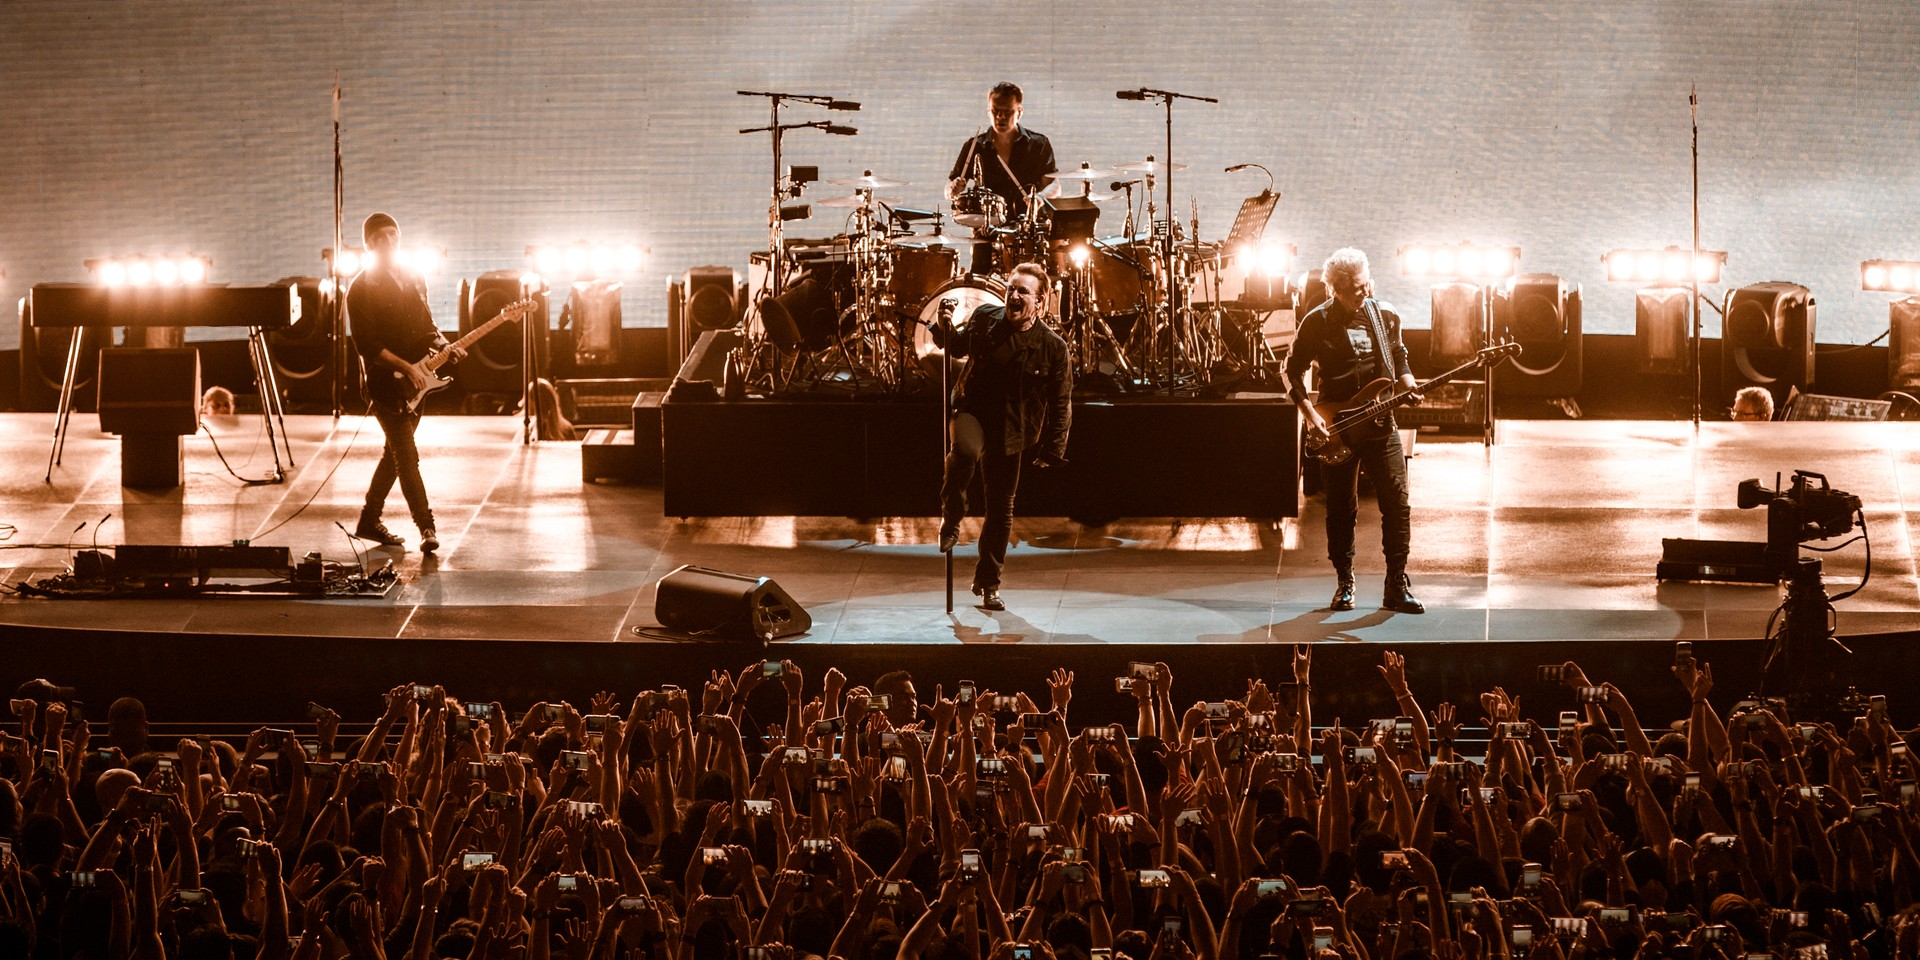 U2 made history at their first Philippine concert, honoring women of the world